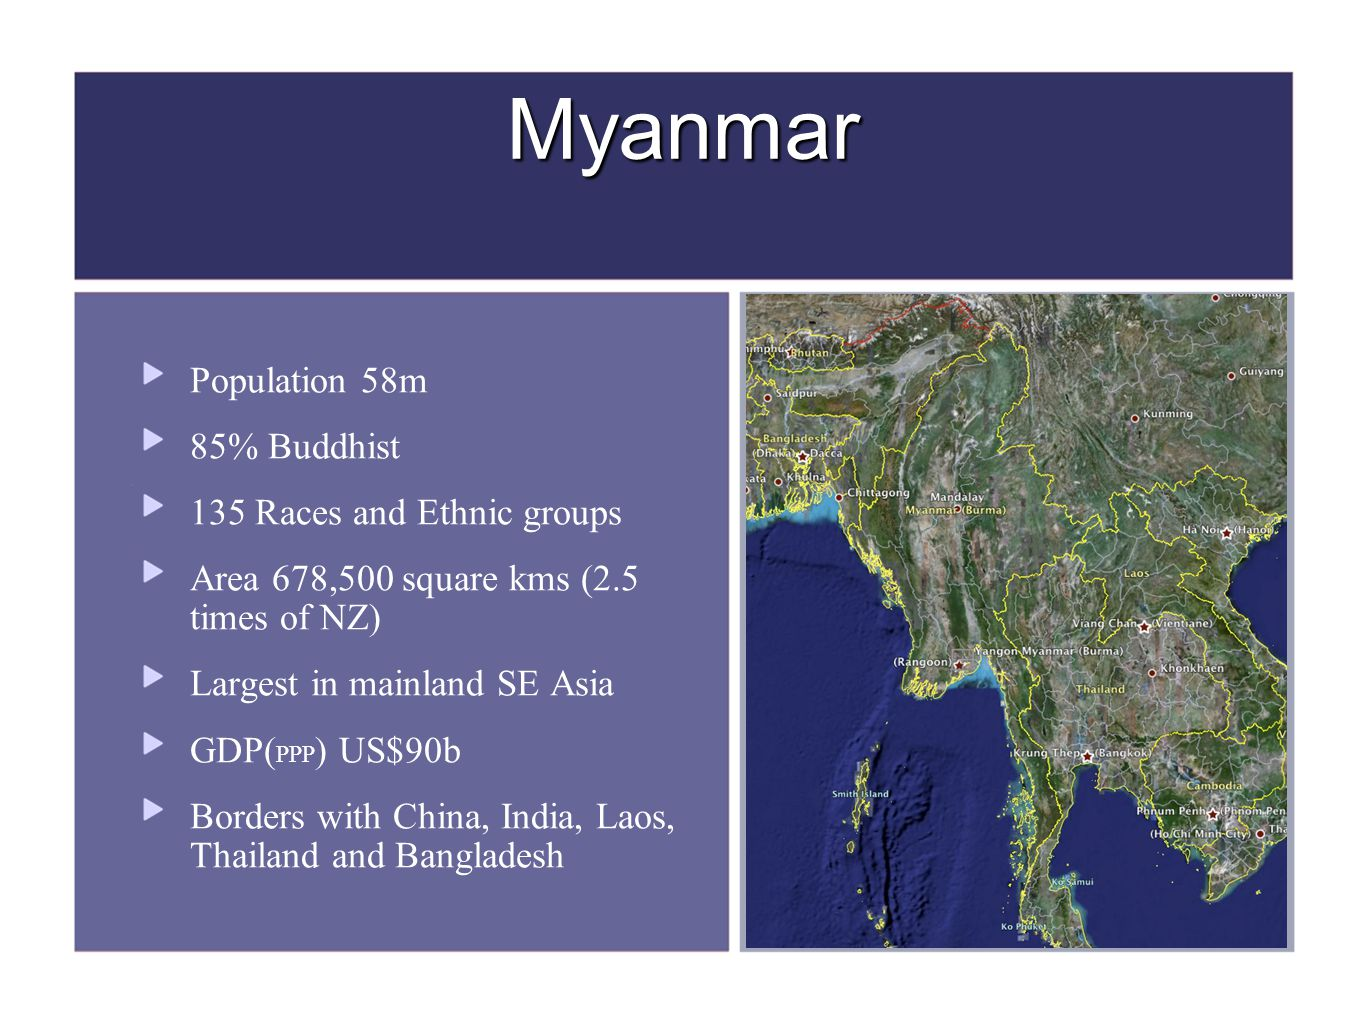 It's the Economy Economy - has be liberalized Private Sector free up to develop 75% of economy 100% Foreign ownership laws drawn up Currency - the Kyat floated as of 2 April 2012 Weak infrastructure is addressed needing $bs Presently cash rich